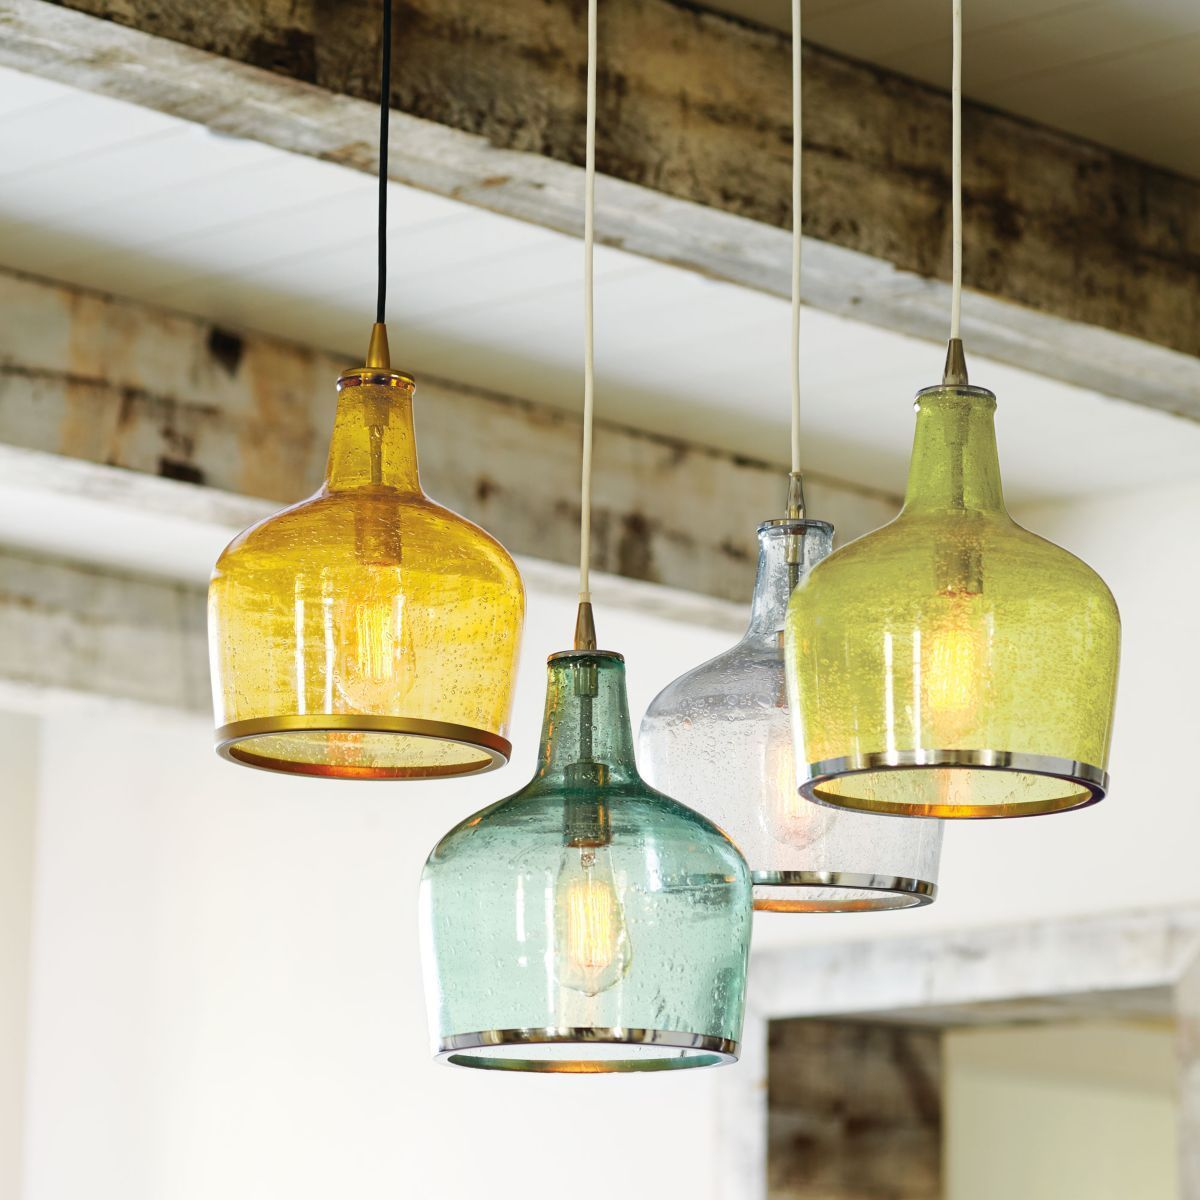 Fascinating colorful glass pendant lamps ideas for your kitchen 19